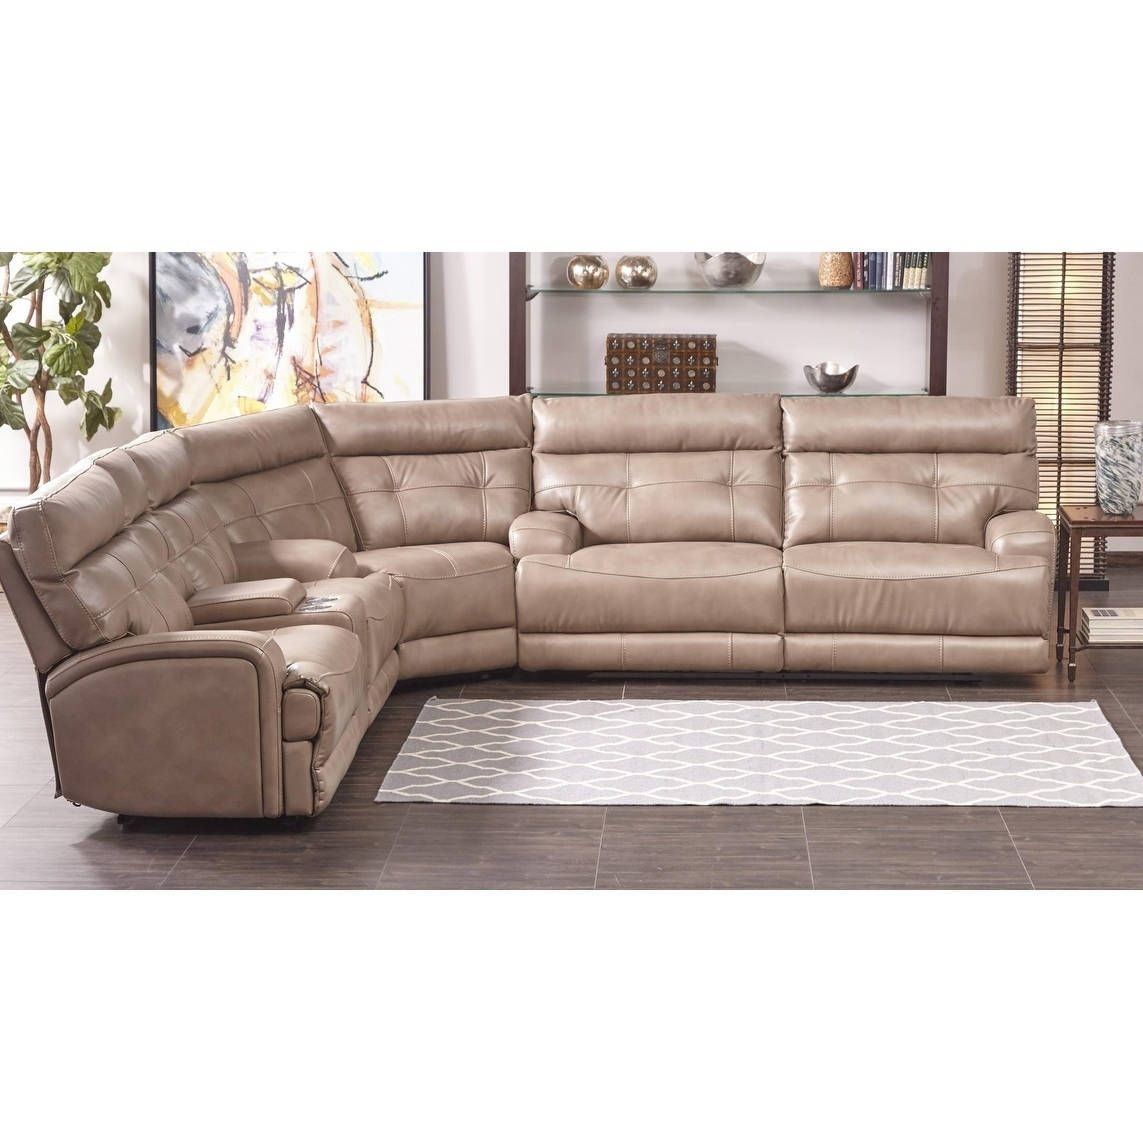 Enjoyable Lyke Home Jakoby Taupe Leather Gel Power Recliner Sectional Pdpeps Interior Chair Design Pdpepsorg